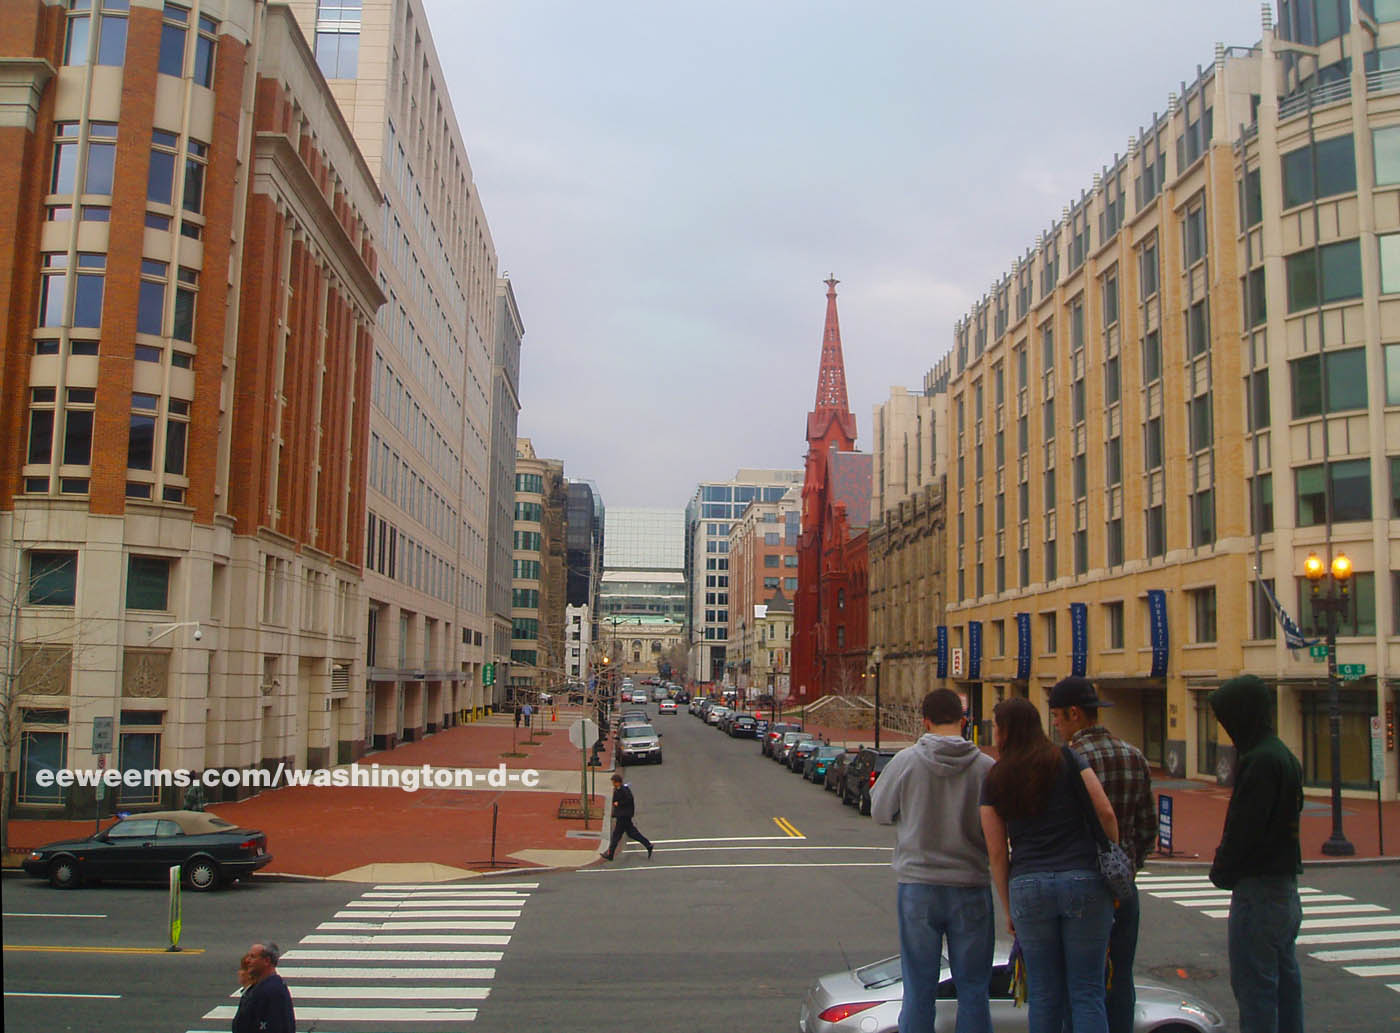 G Street And 8th Street Nw In Washington Dc